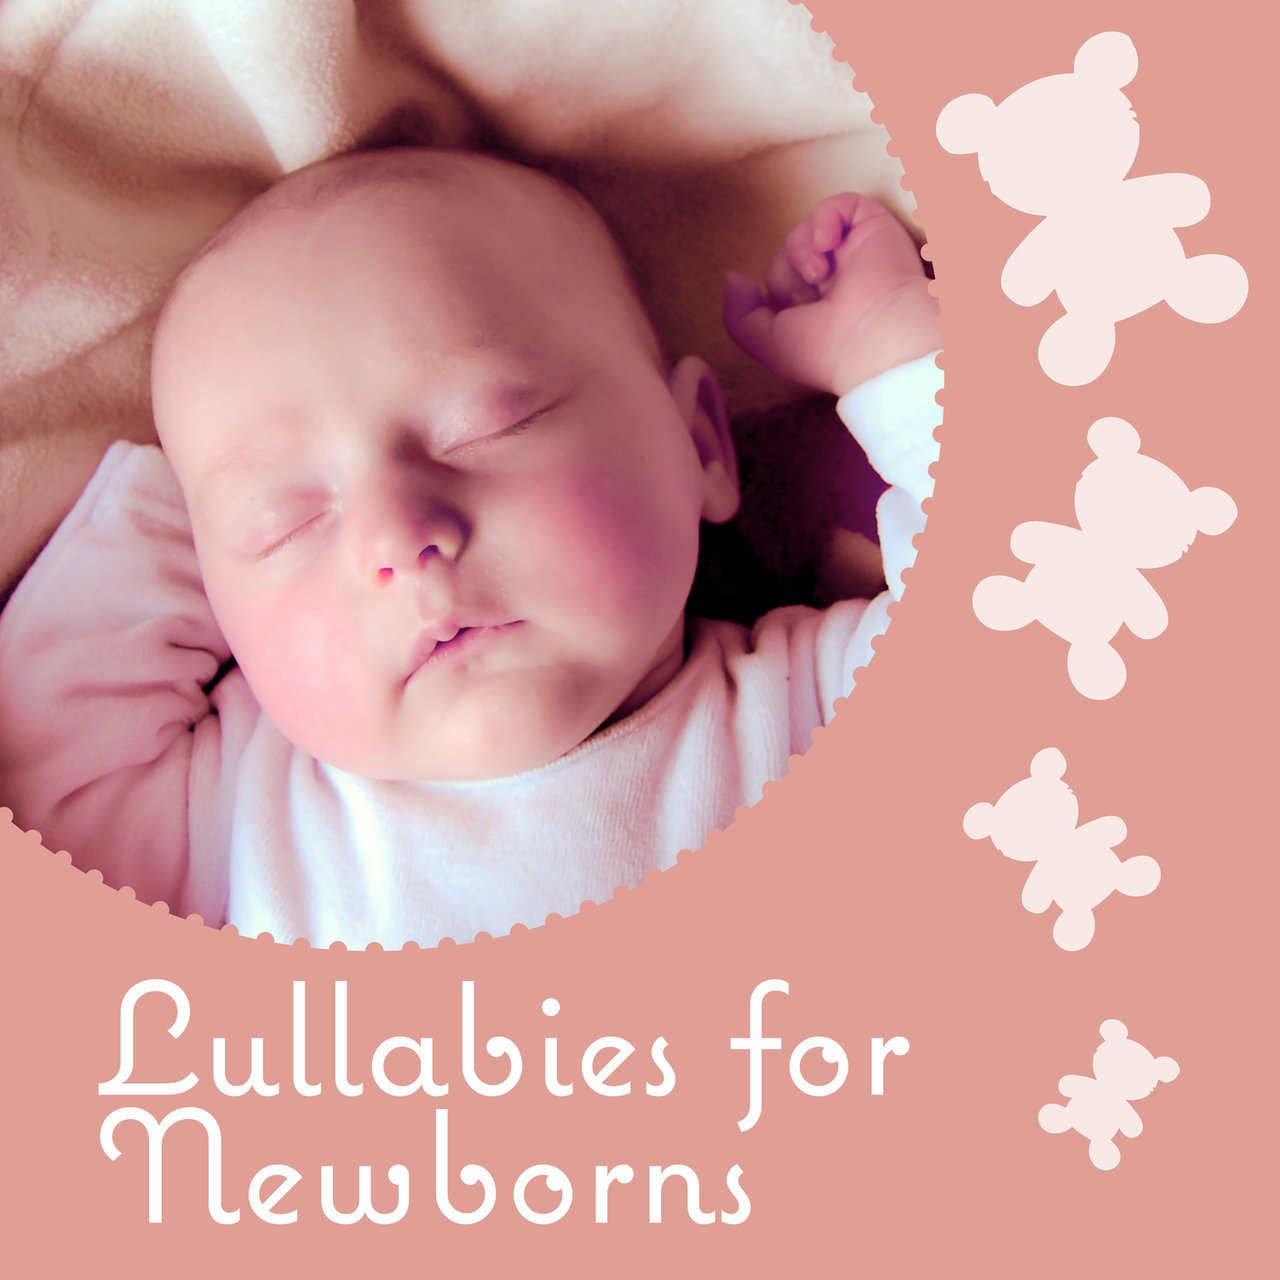 Baby bedtime music - Lullabies For Newborns Healing Songs For Sleep Quiet Baby Bedtime Music Soothing Sounds At Goodnight